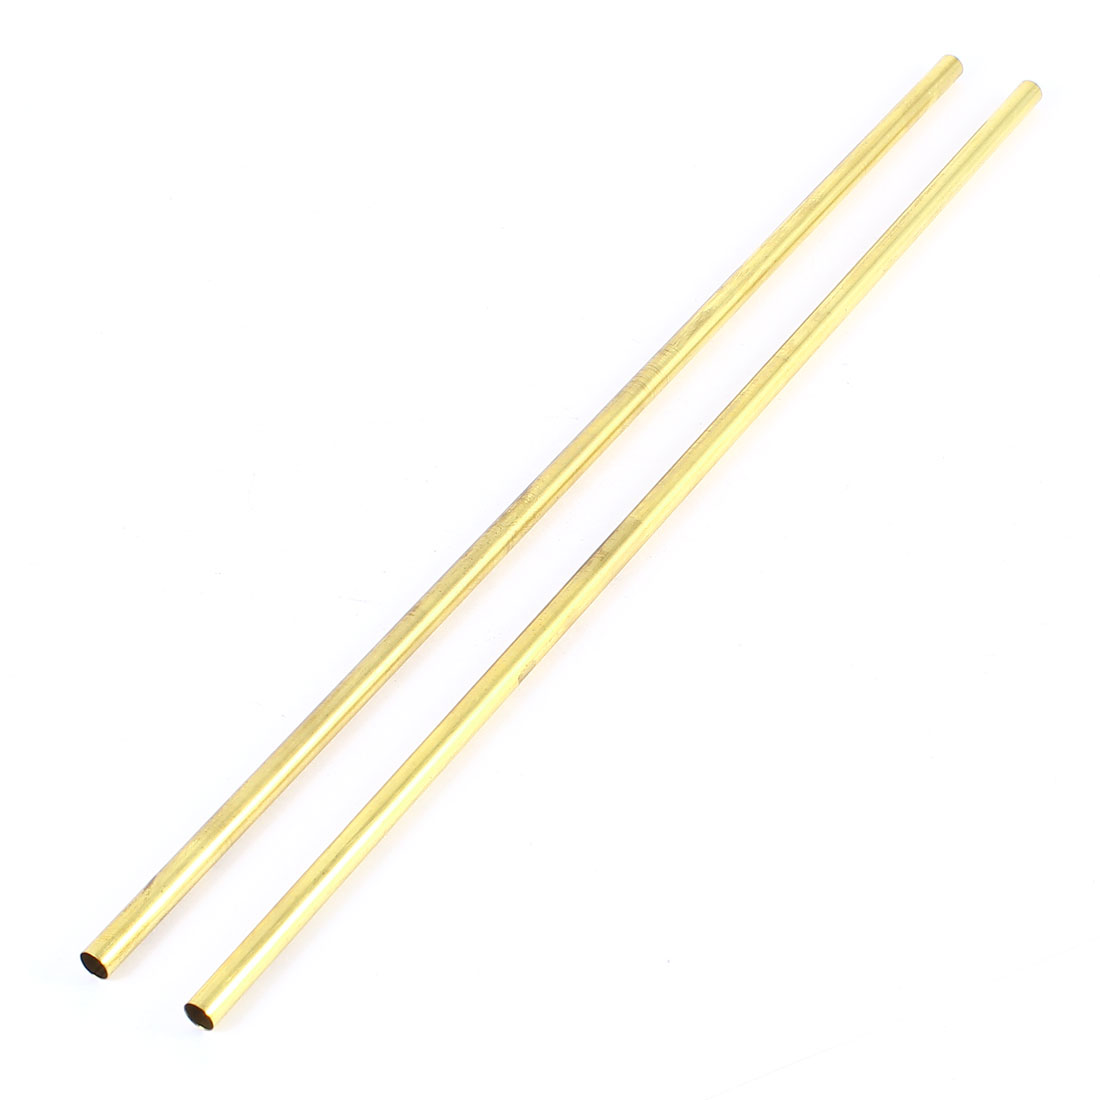 2pcs Repaire Parts Round Brushless Electric RC Model Boat Flex Shaft Copper Outside Tube 5.5mm x 6mm x 300mm